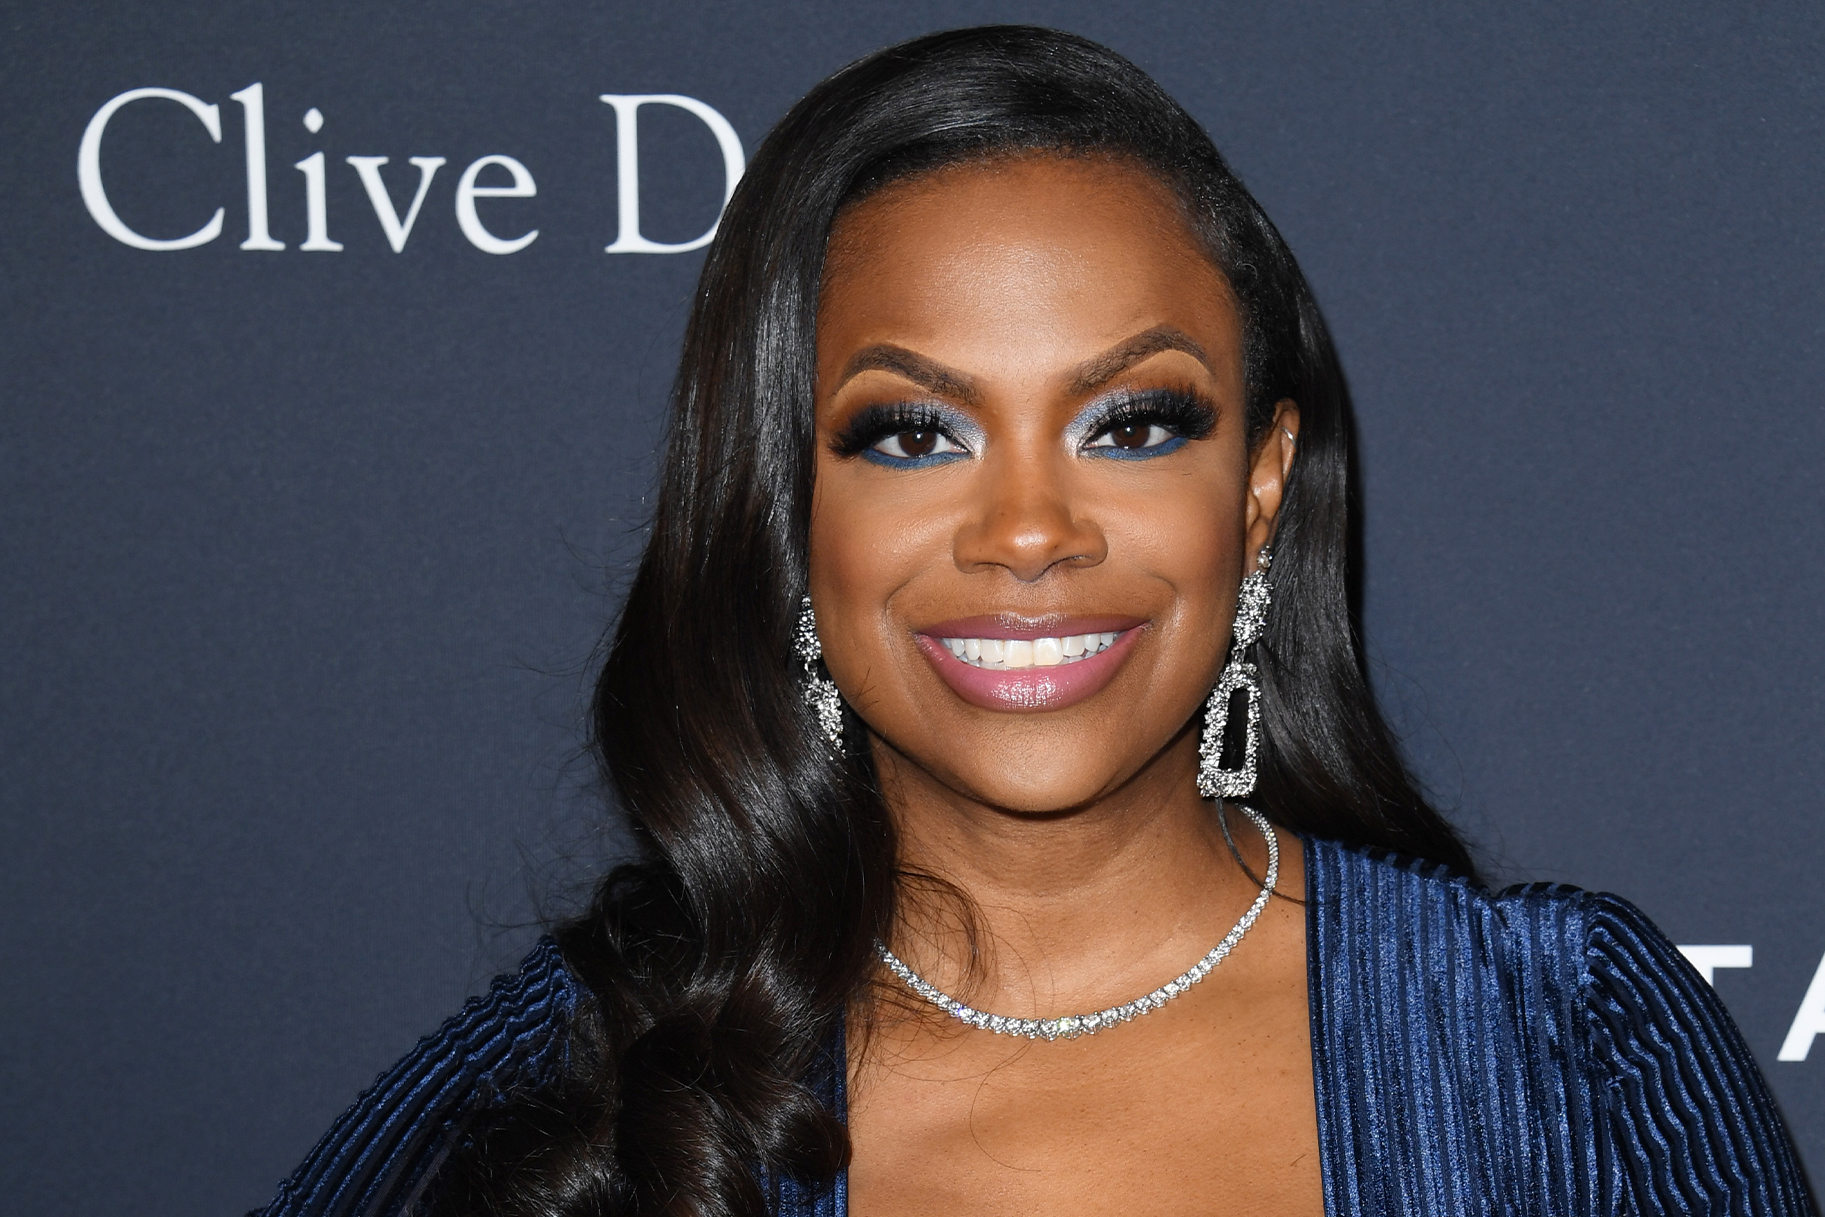 kandi-burruss-has-fans-excited-with-this-ig-post-check-out-whats-it-all-about